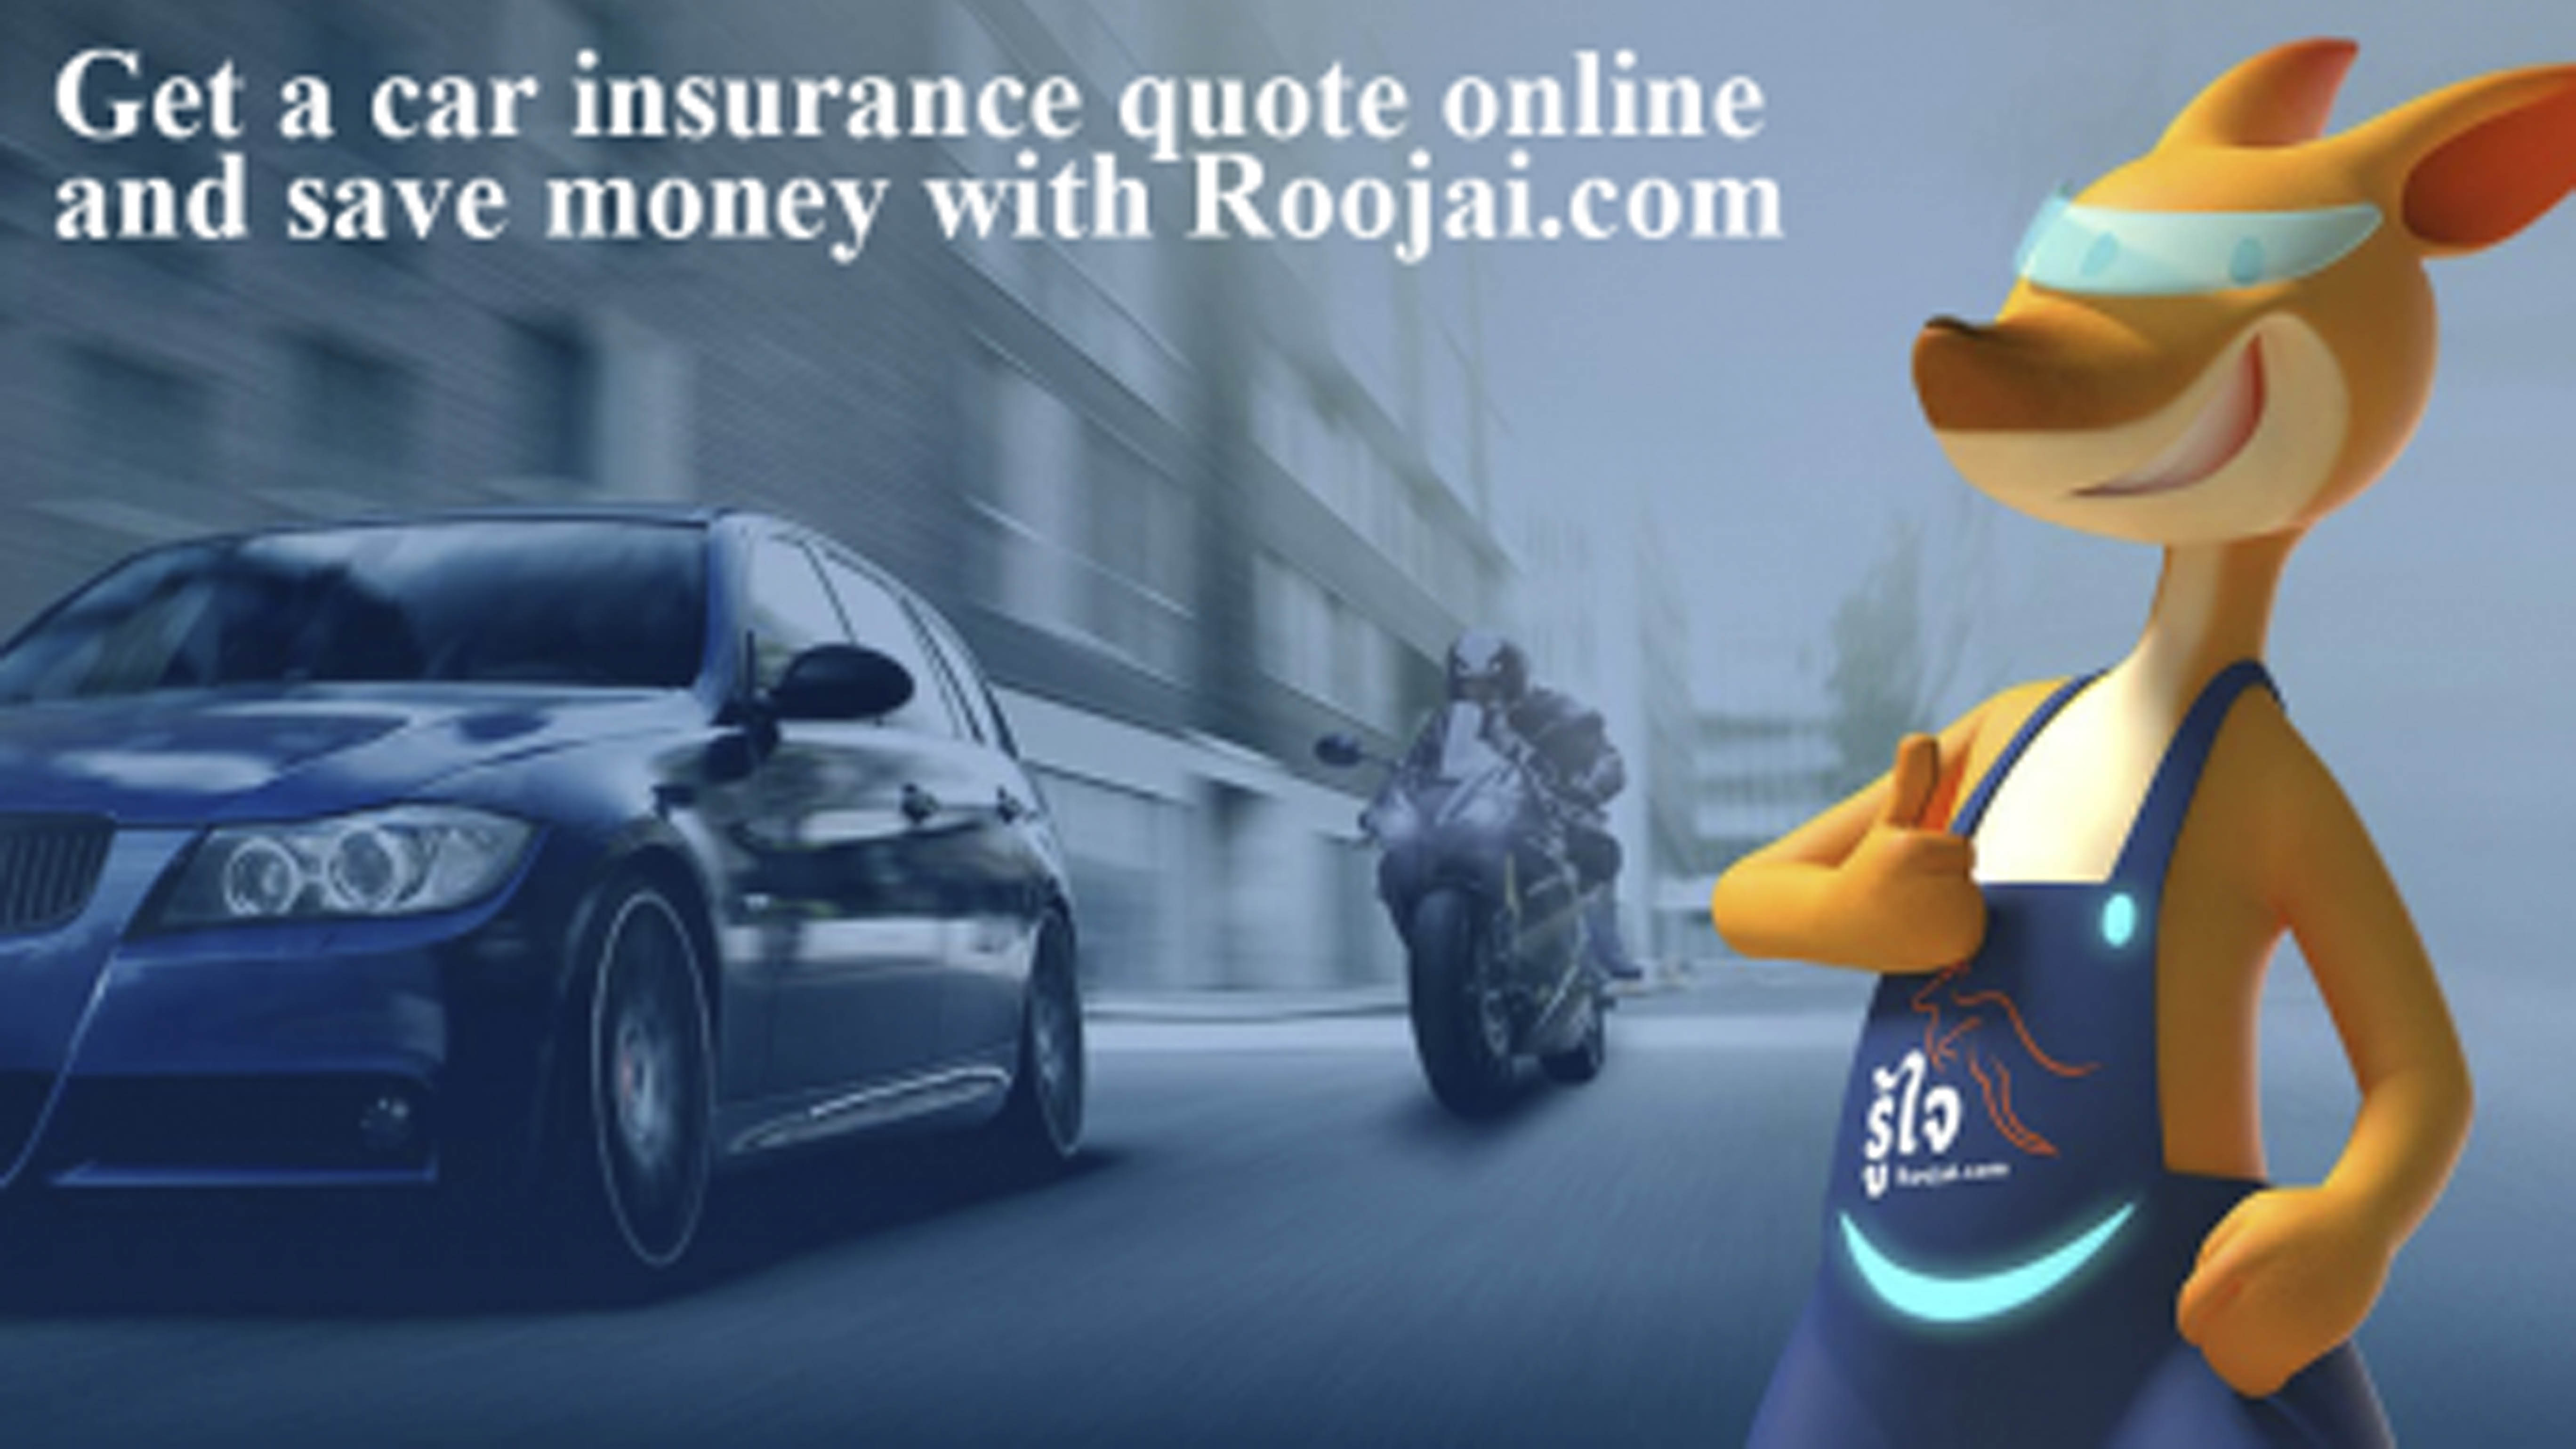 Get Car Insurance Quotes >> Get A Car Insurance Quote Online And Save Money With Roojai